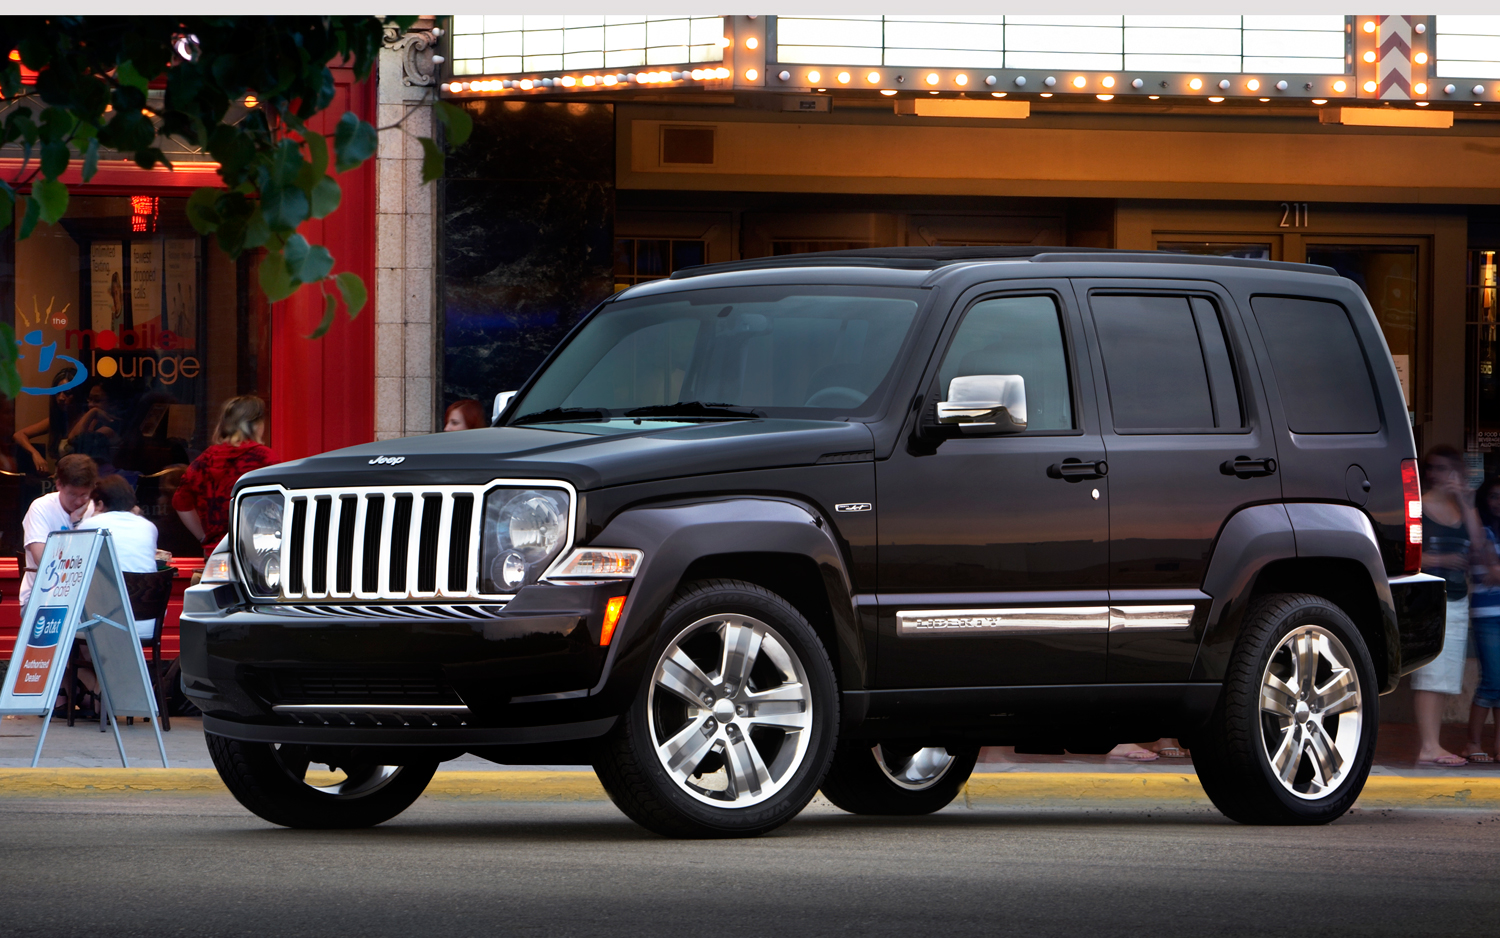 report: jeep liberty production to shut down august 16 - motortrend